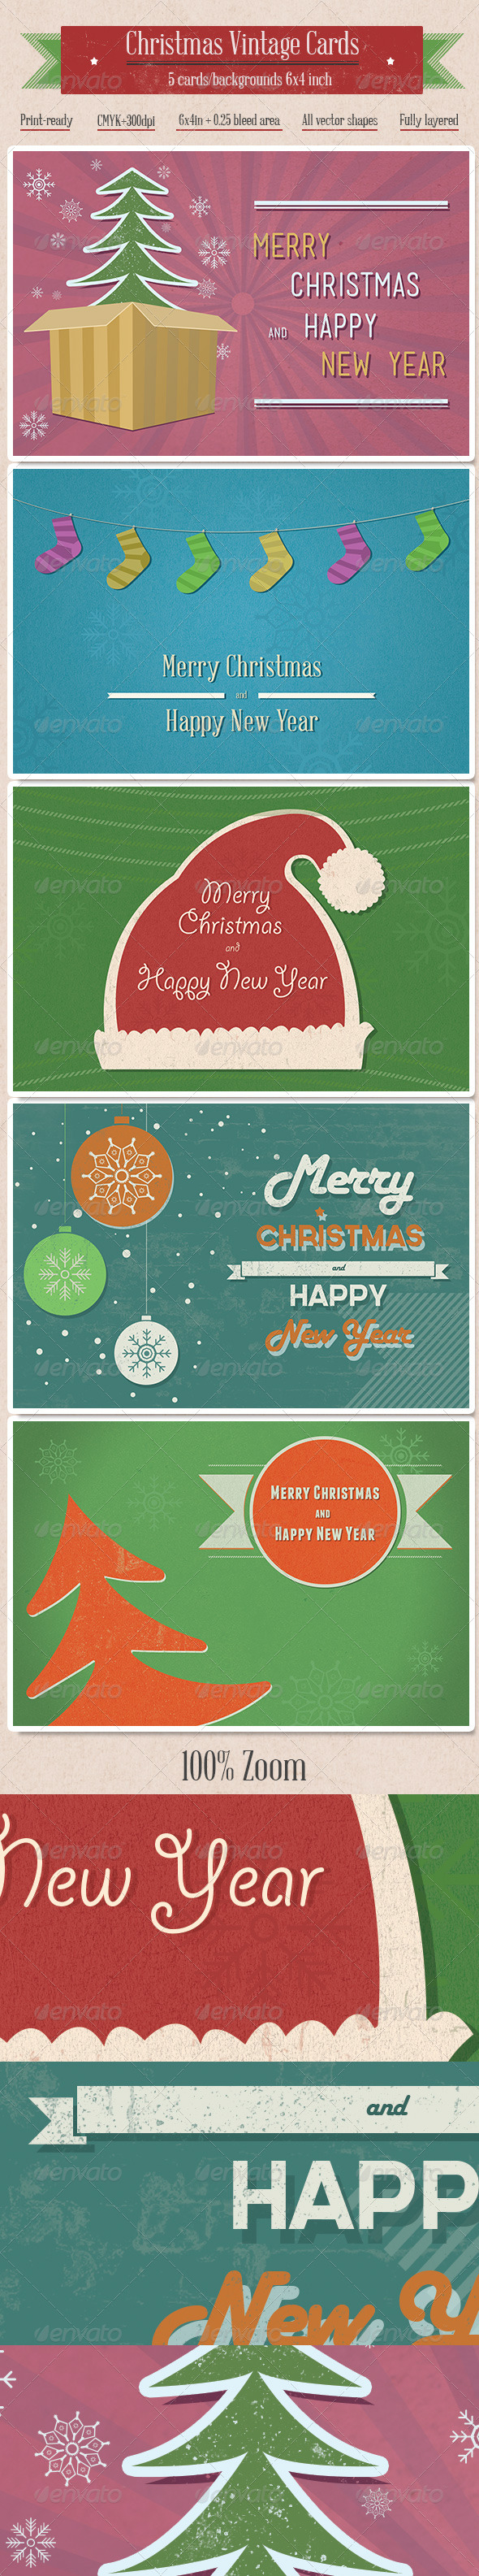 5 Vintage Christmas Cards/Backgrounds